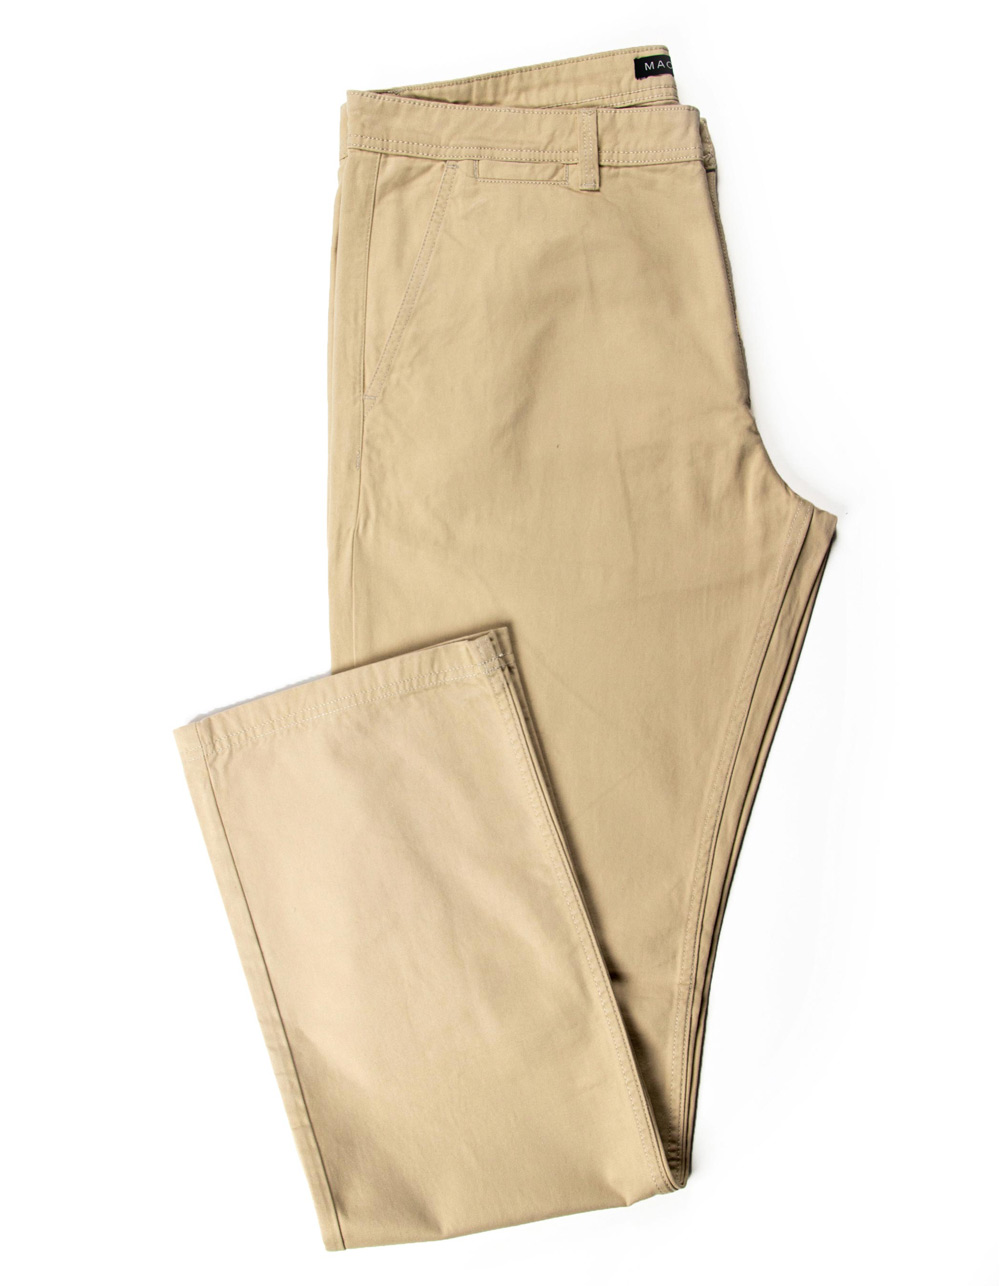 Beige blue chinos trousers